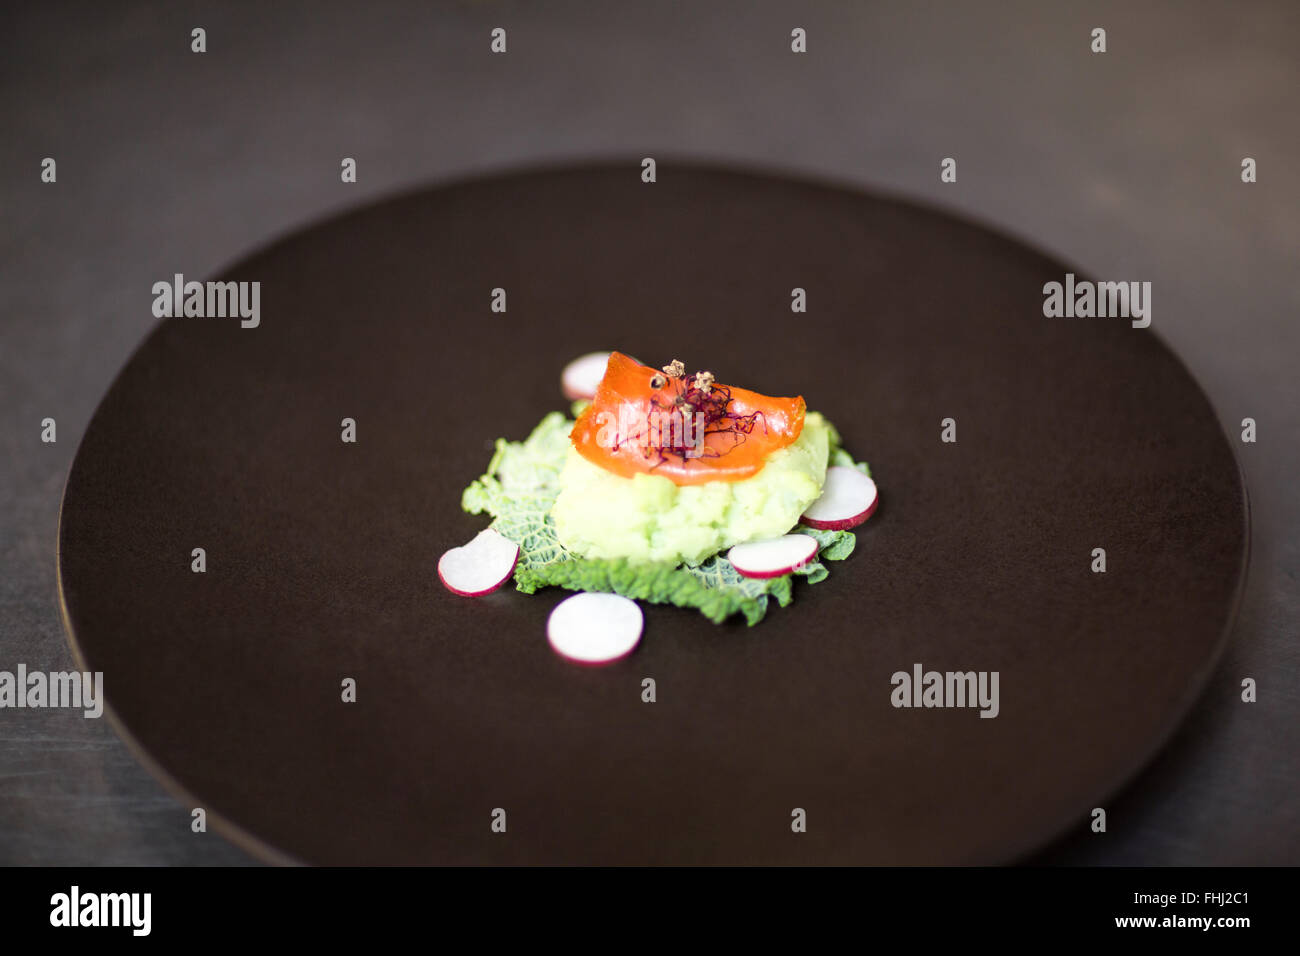 Salmon dinner on a plate on order station - Stock Image